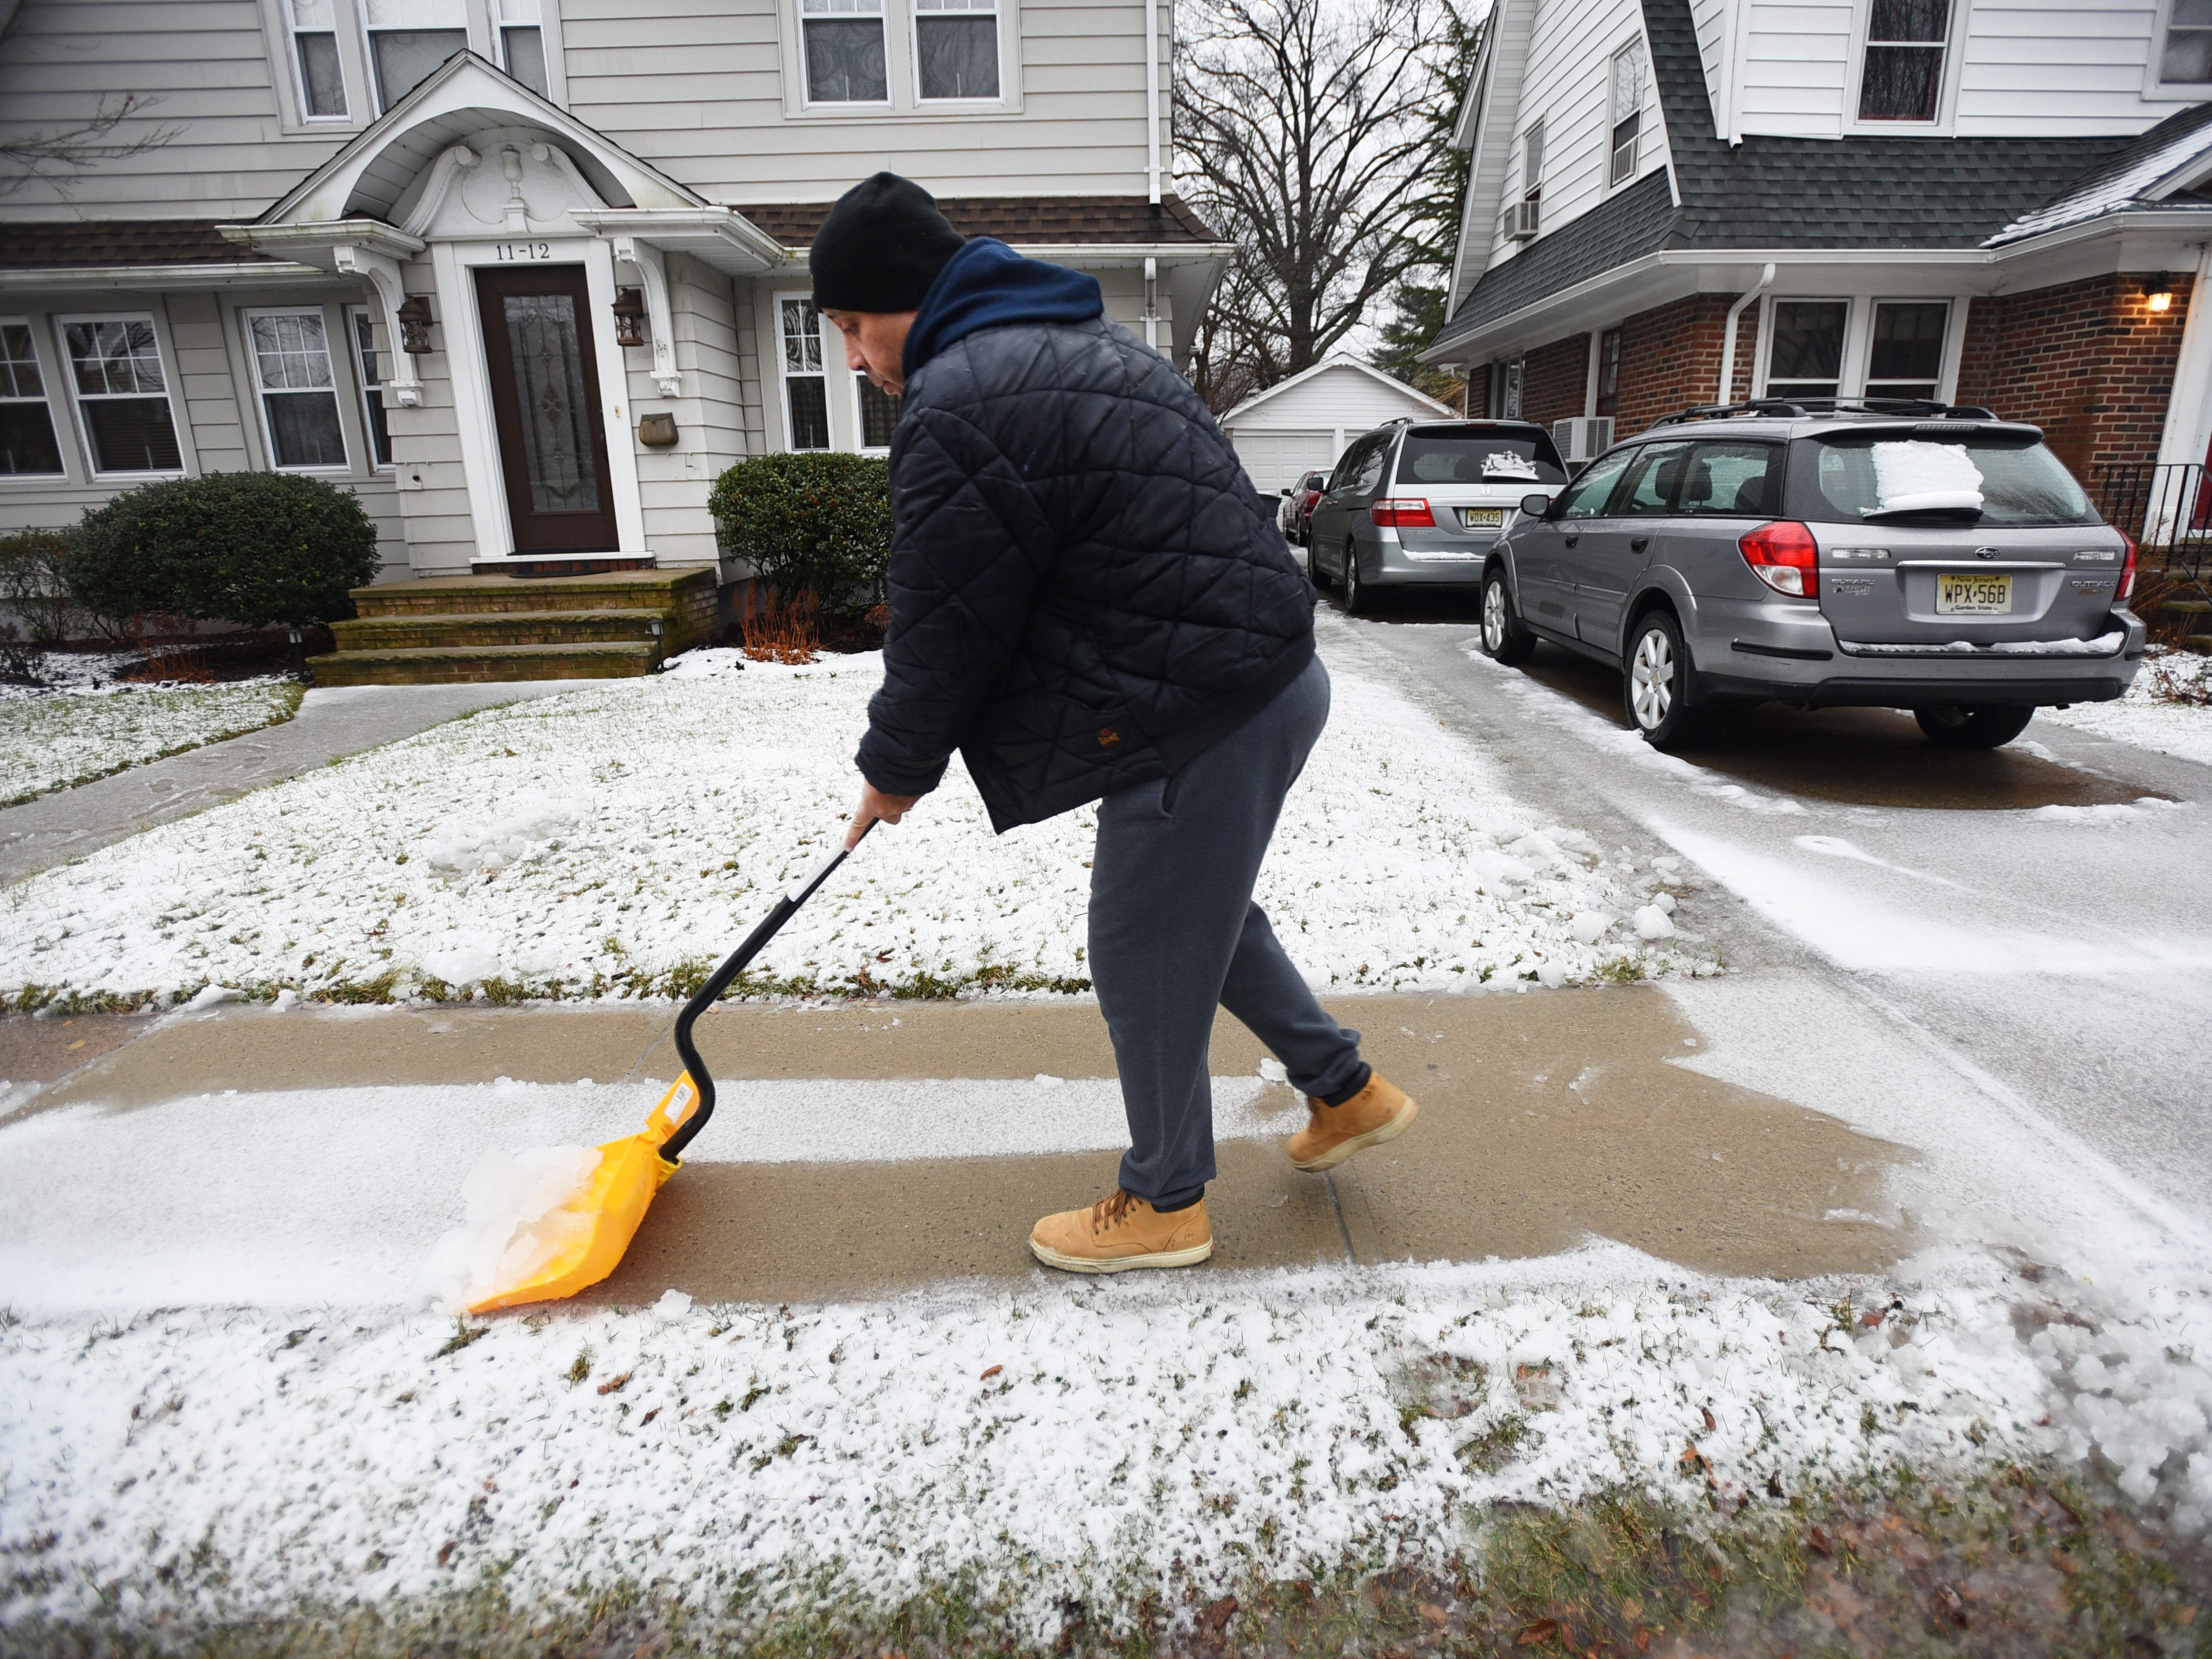 John Figueroa of Fair Lawn, shovels snow from the sidewalk outside of his home on Sunday morning in Fair Lawn, NJ on 01/20/19.